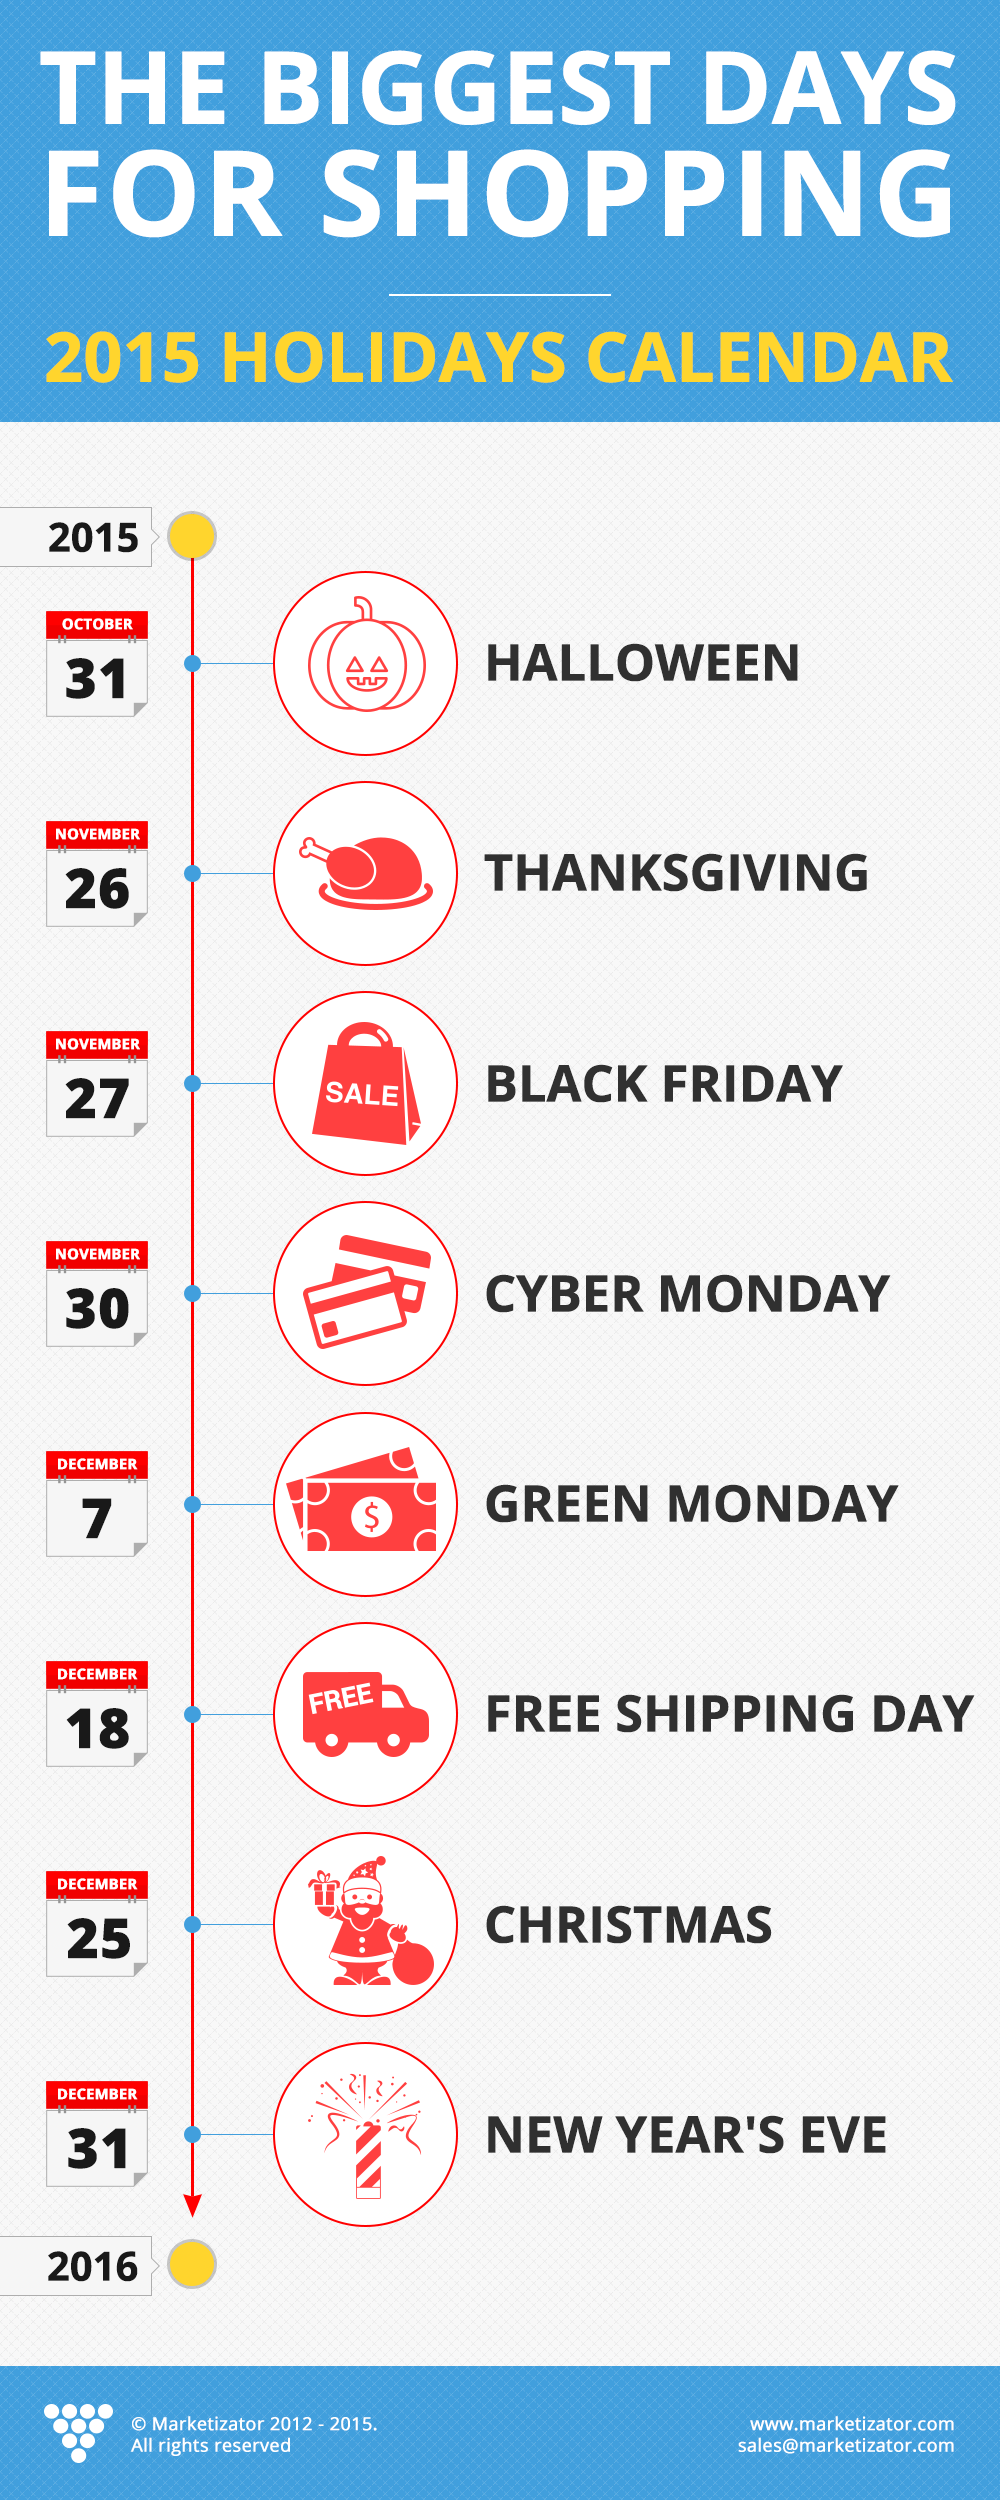 The Biggest Days For Shopping - 2015 Holidays Calendar